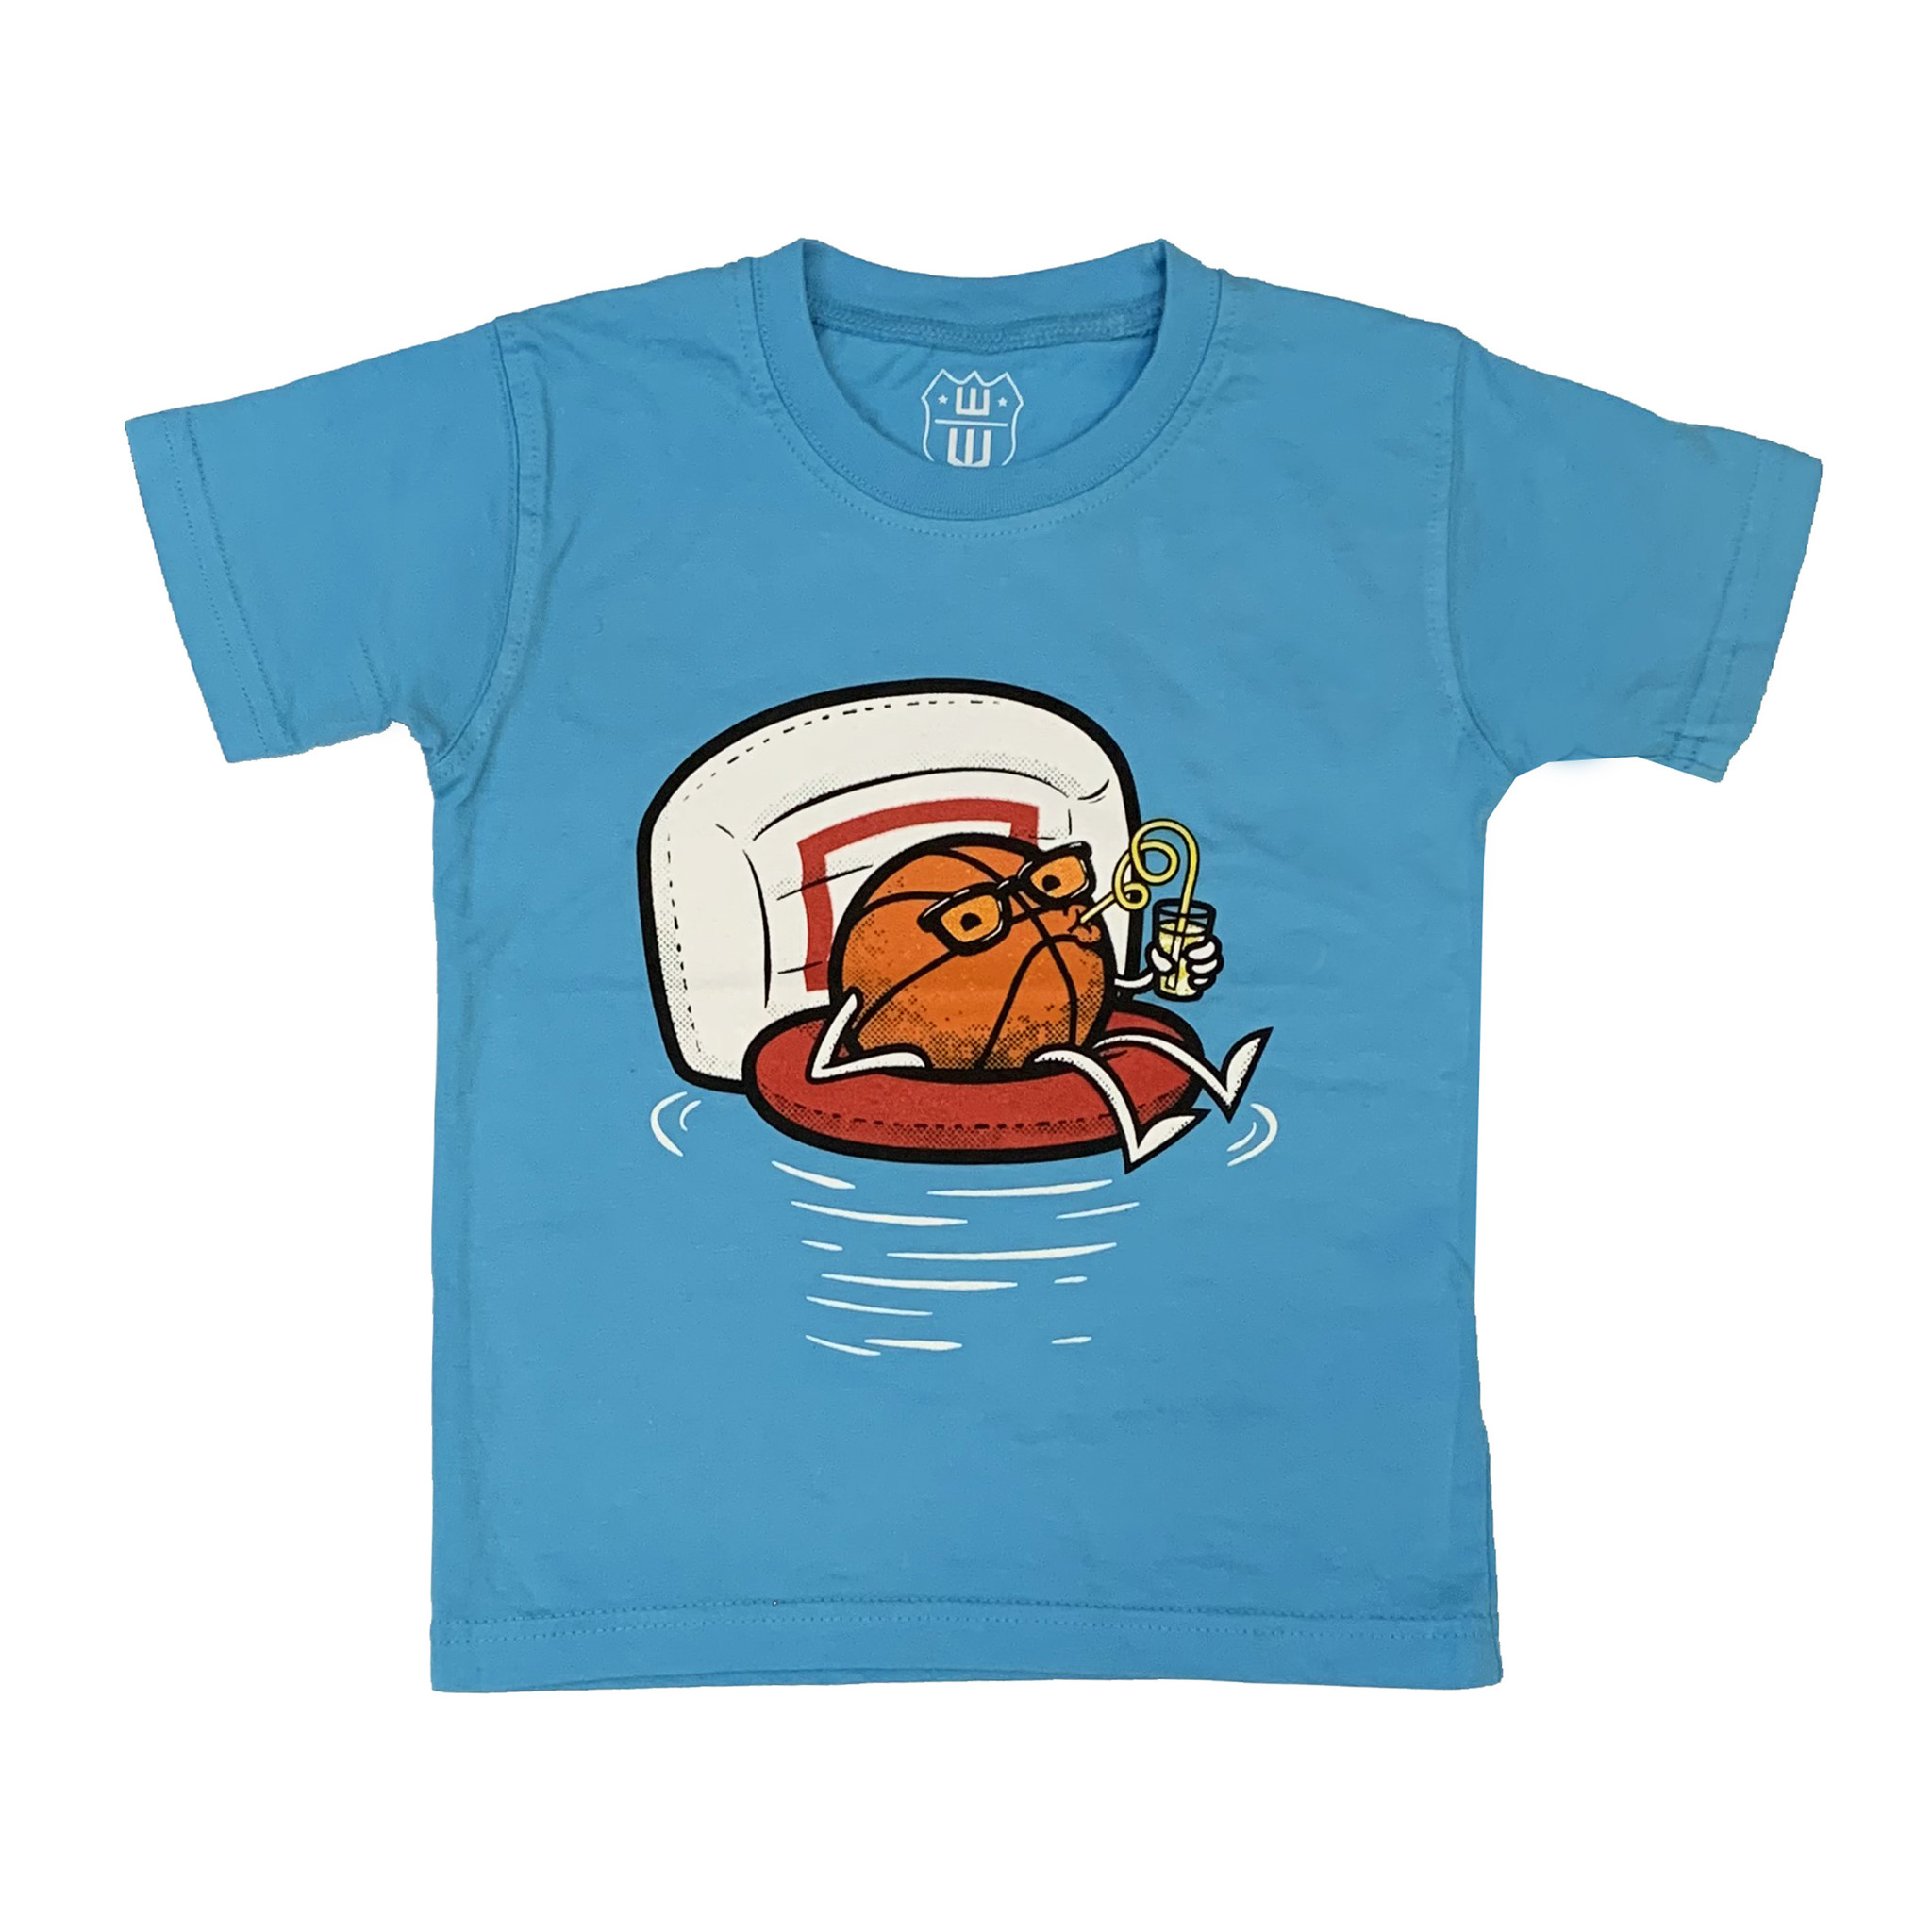 Wes & Willy Infant Summer Basketball Tee